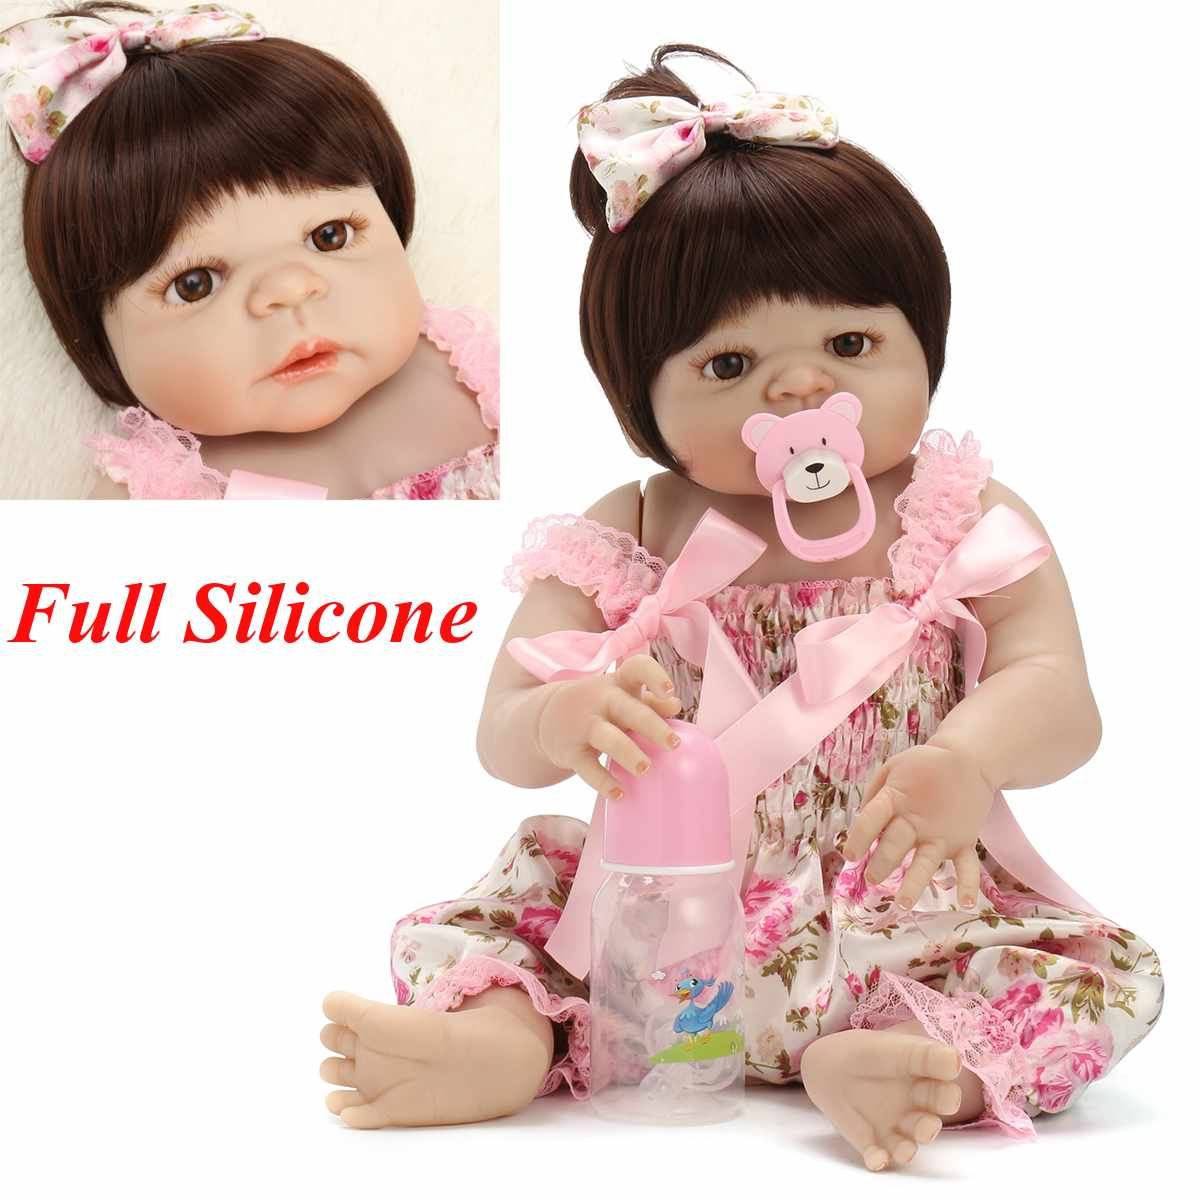 56cm Soft Silicone Reborn Baby Lifelike Baby Doll Toddler Bonecas Toy Kid Doll Bebes Reborn Brinquedos Reborn Toys Kids Gifts56cm Soft Silicone Reborn Baby Lifelike Baby Doll Toddler Bonecas Toy Kid Doll Bebes Reborn Brinquedos Reborn Toys Kids Gifts